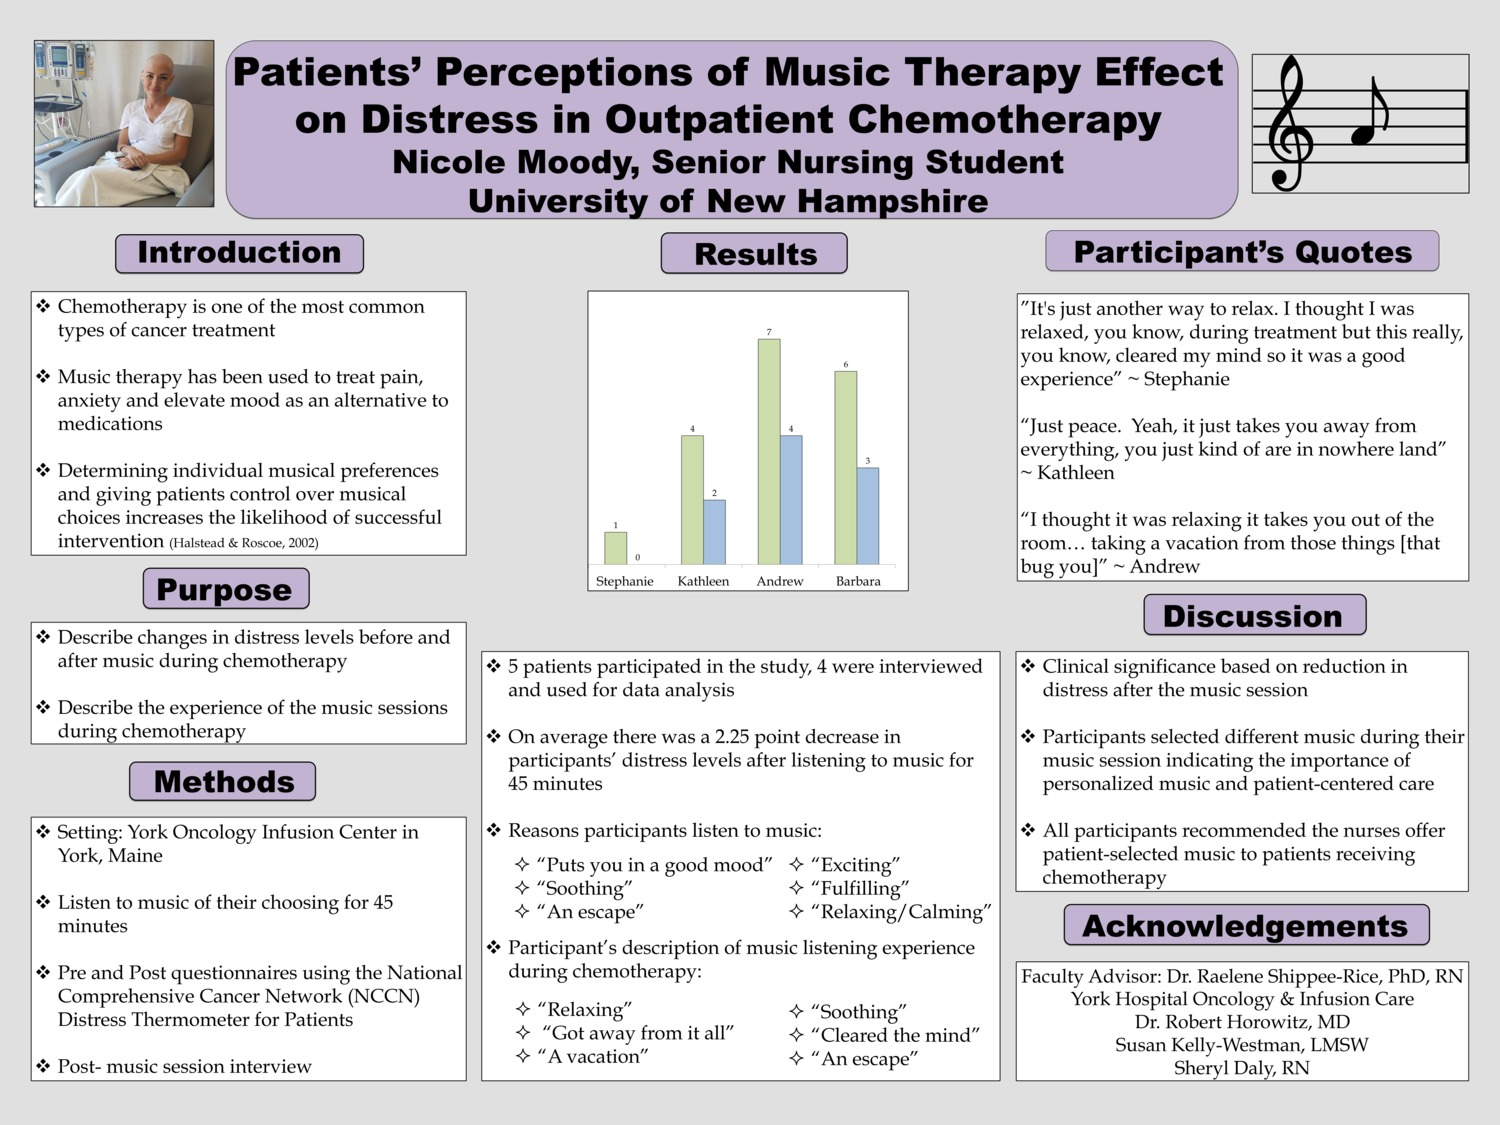 Patients' Perceptions Of Music Therapy Effect On Distress In Outpatient Chemotherapy by nm2002